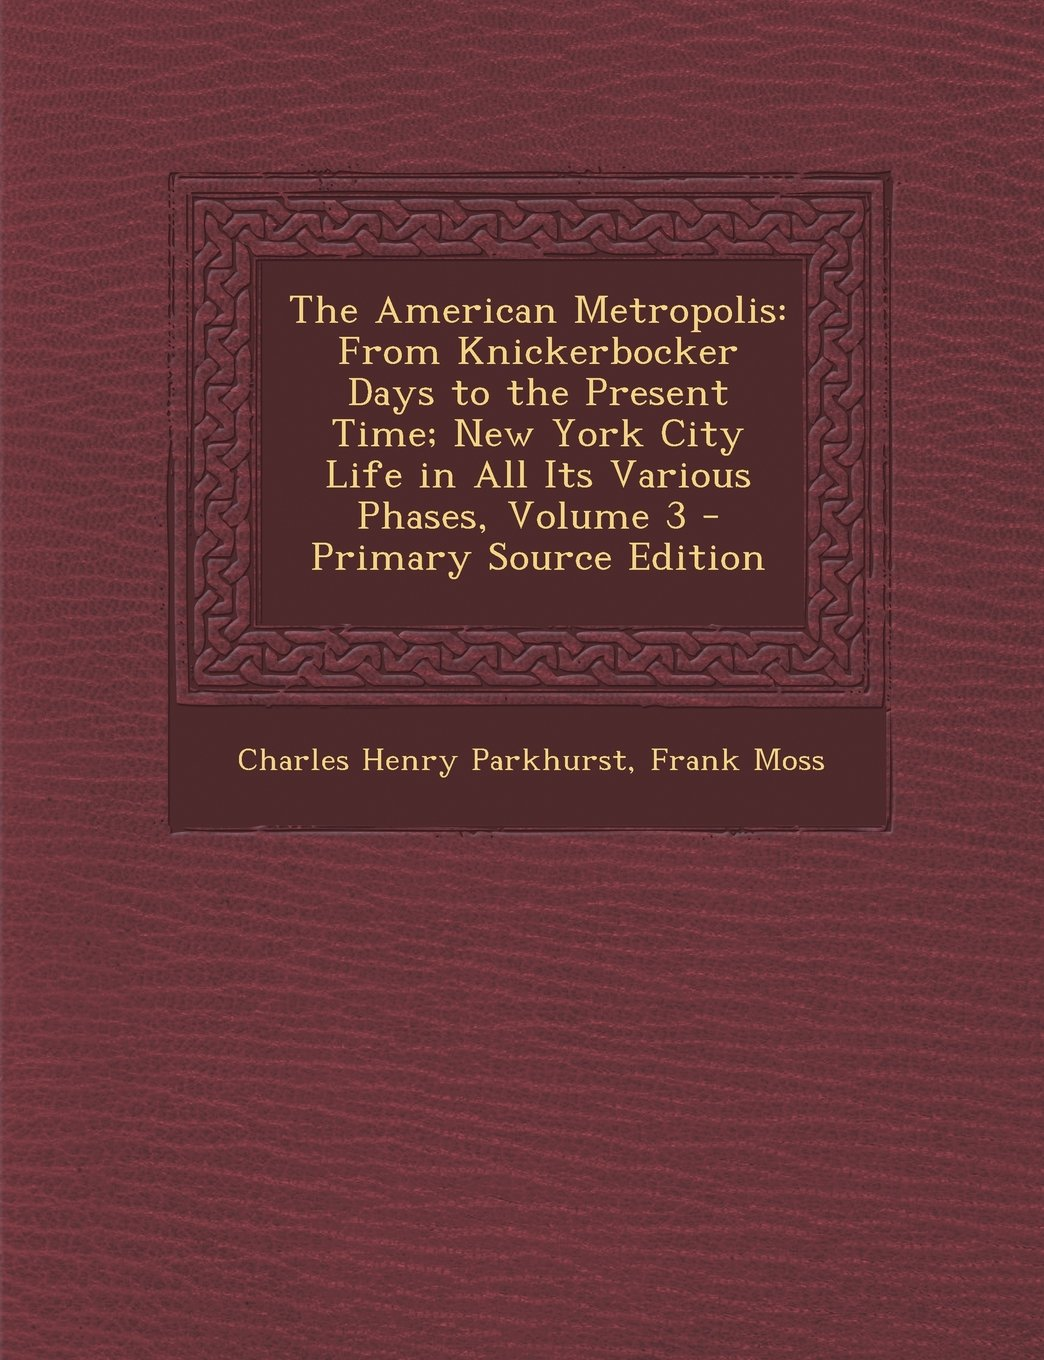 The American Metropolis: From Knickerbocker Days to the Present Time; New York City Life in All Its Various Phases, Volume 3 pdf